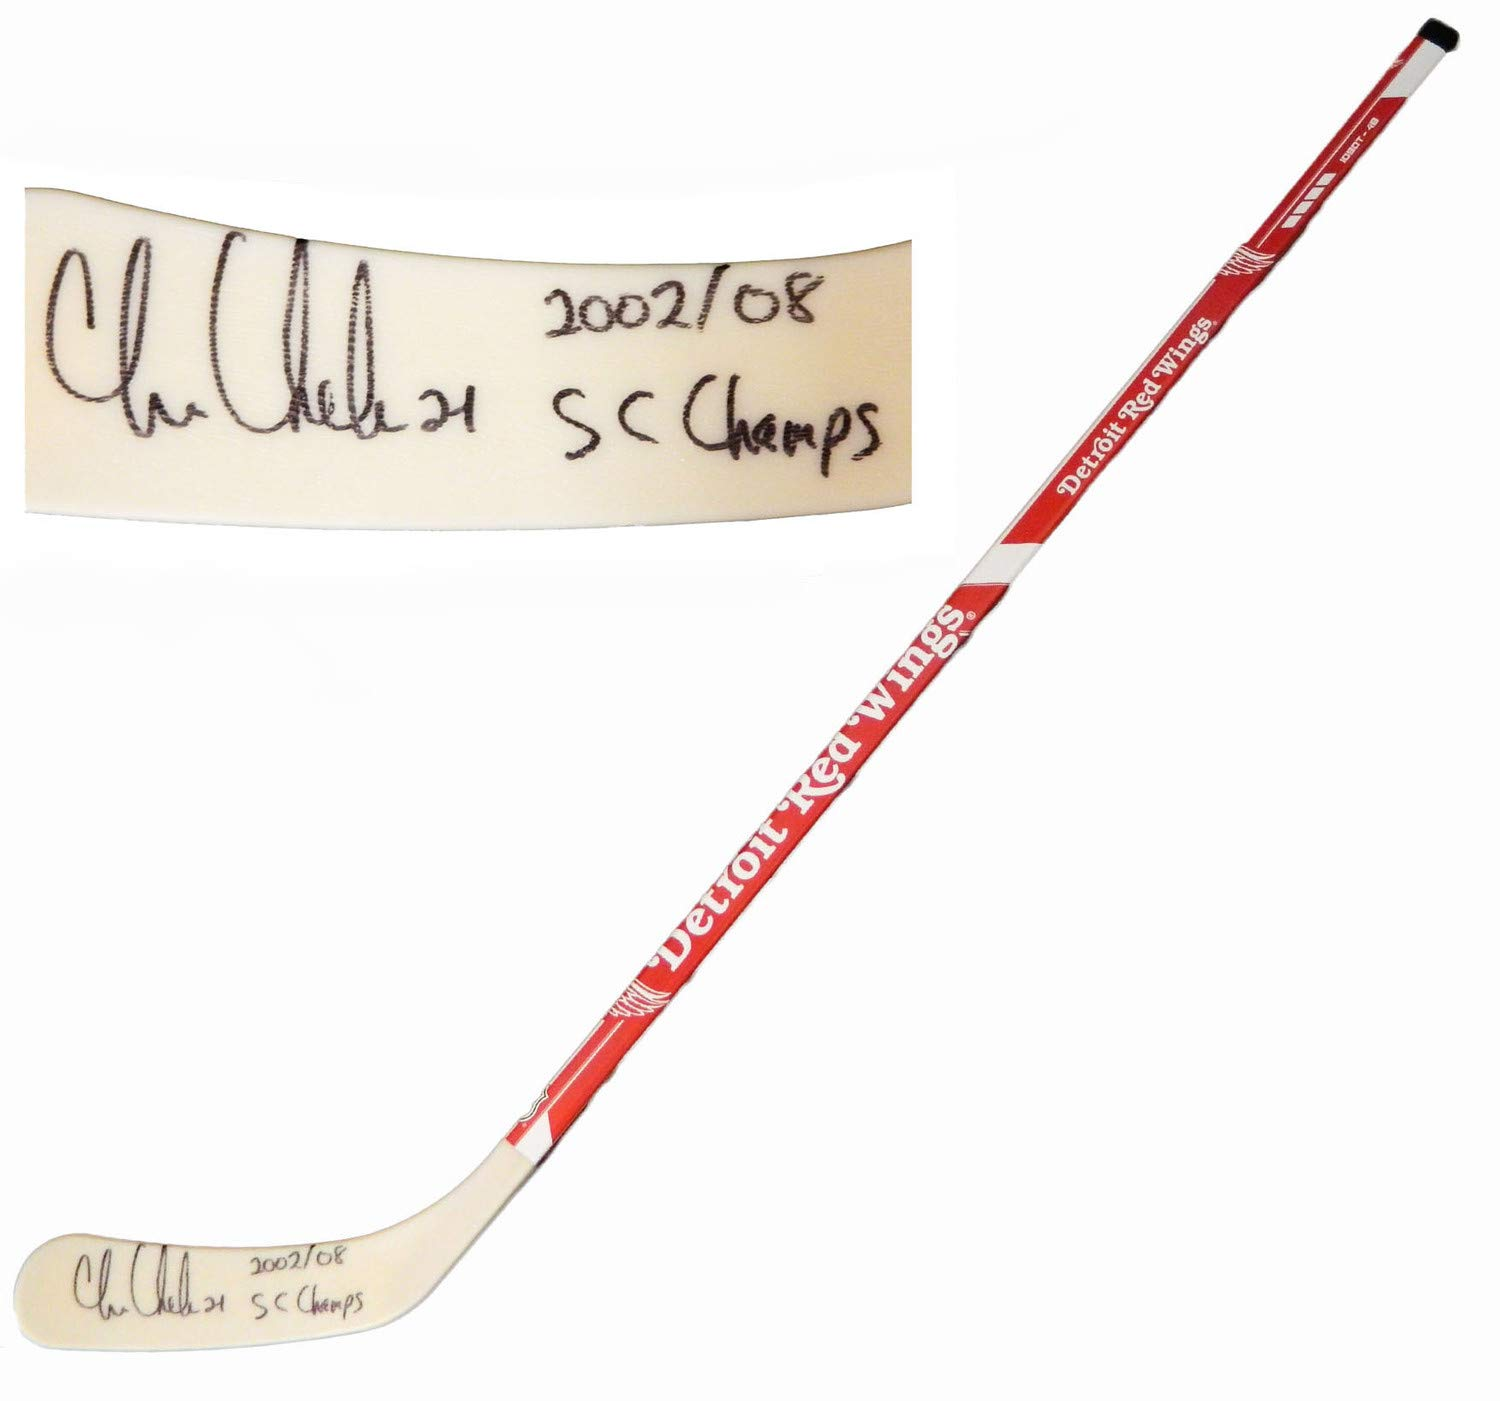 Chris Chelios Autographed Signed Detroit Red Wings Logo 48 Inch Full Size Hockey Stick 2002 08 Sc Champs Certified Authentic